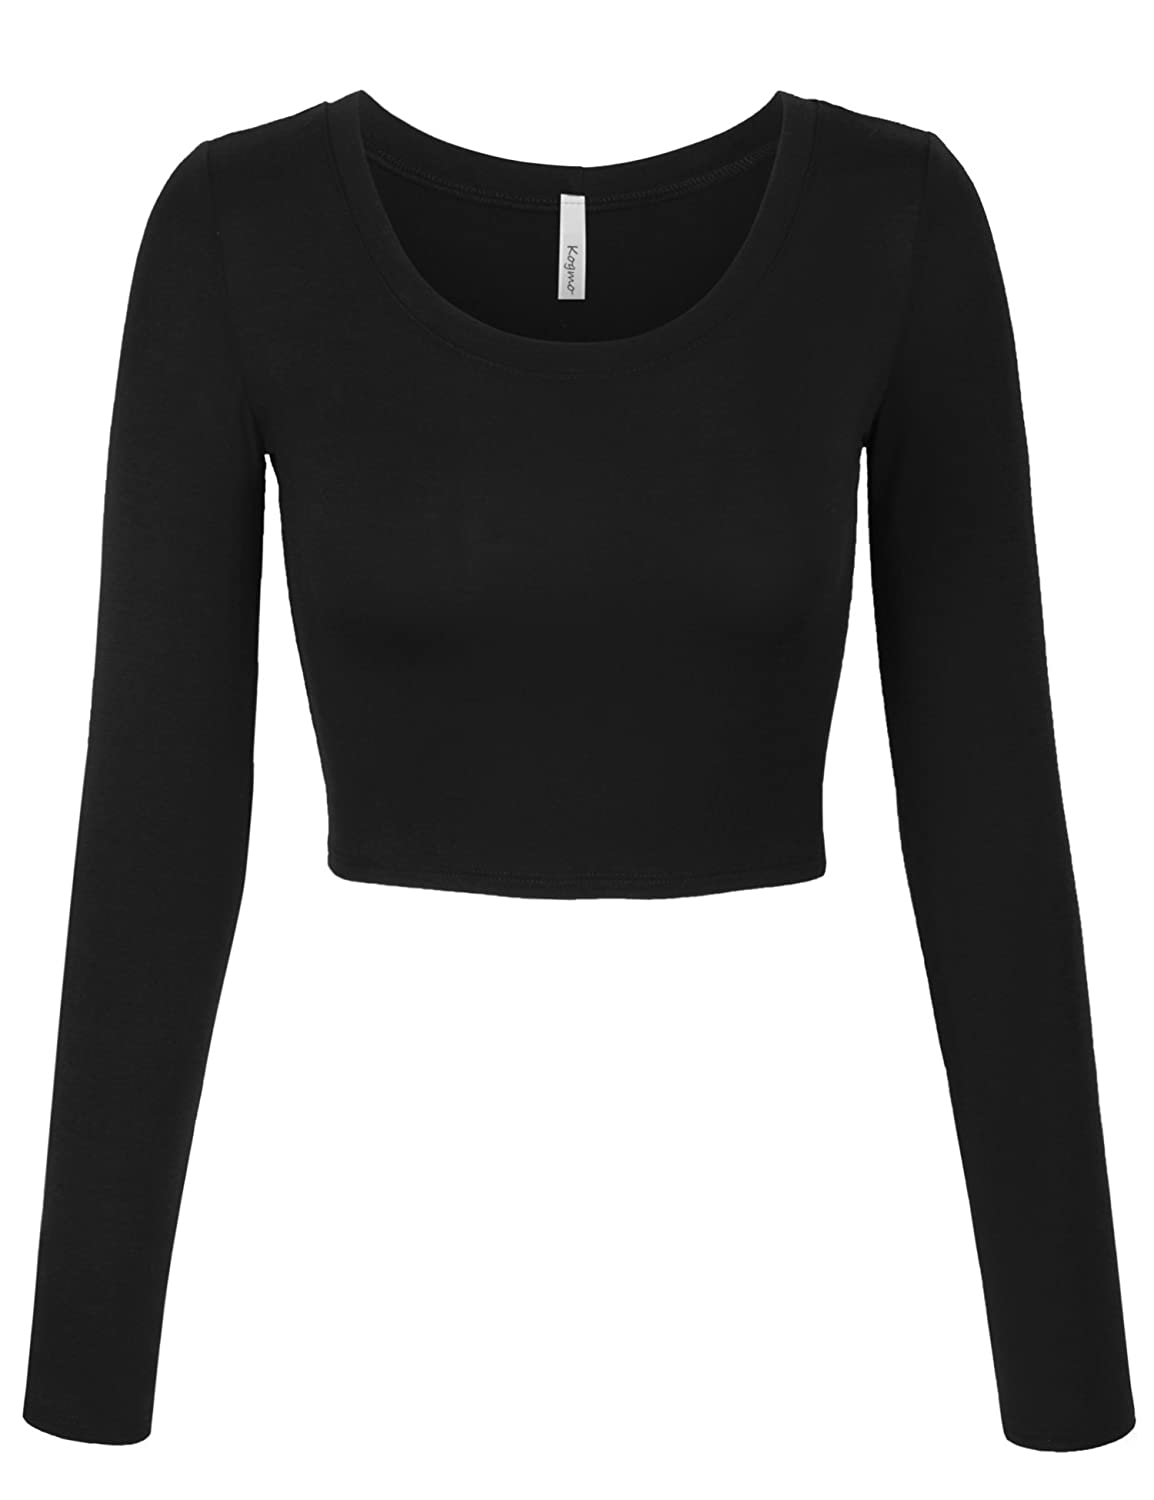 d6fc0e4f KOGMO Womens Long Sleeve Basic Crop Top Round Neck with Stretch at Amazon  Women's Clothing store: